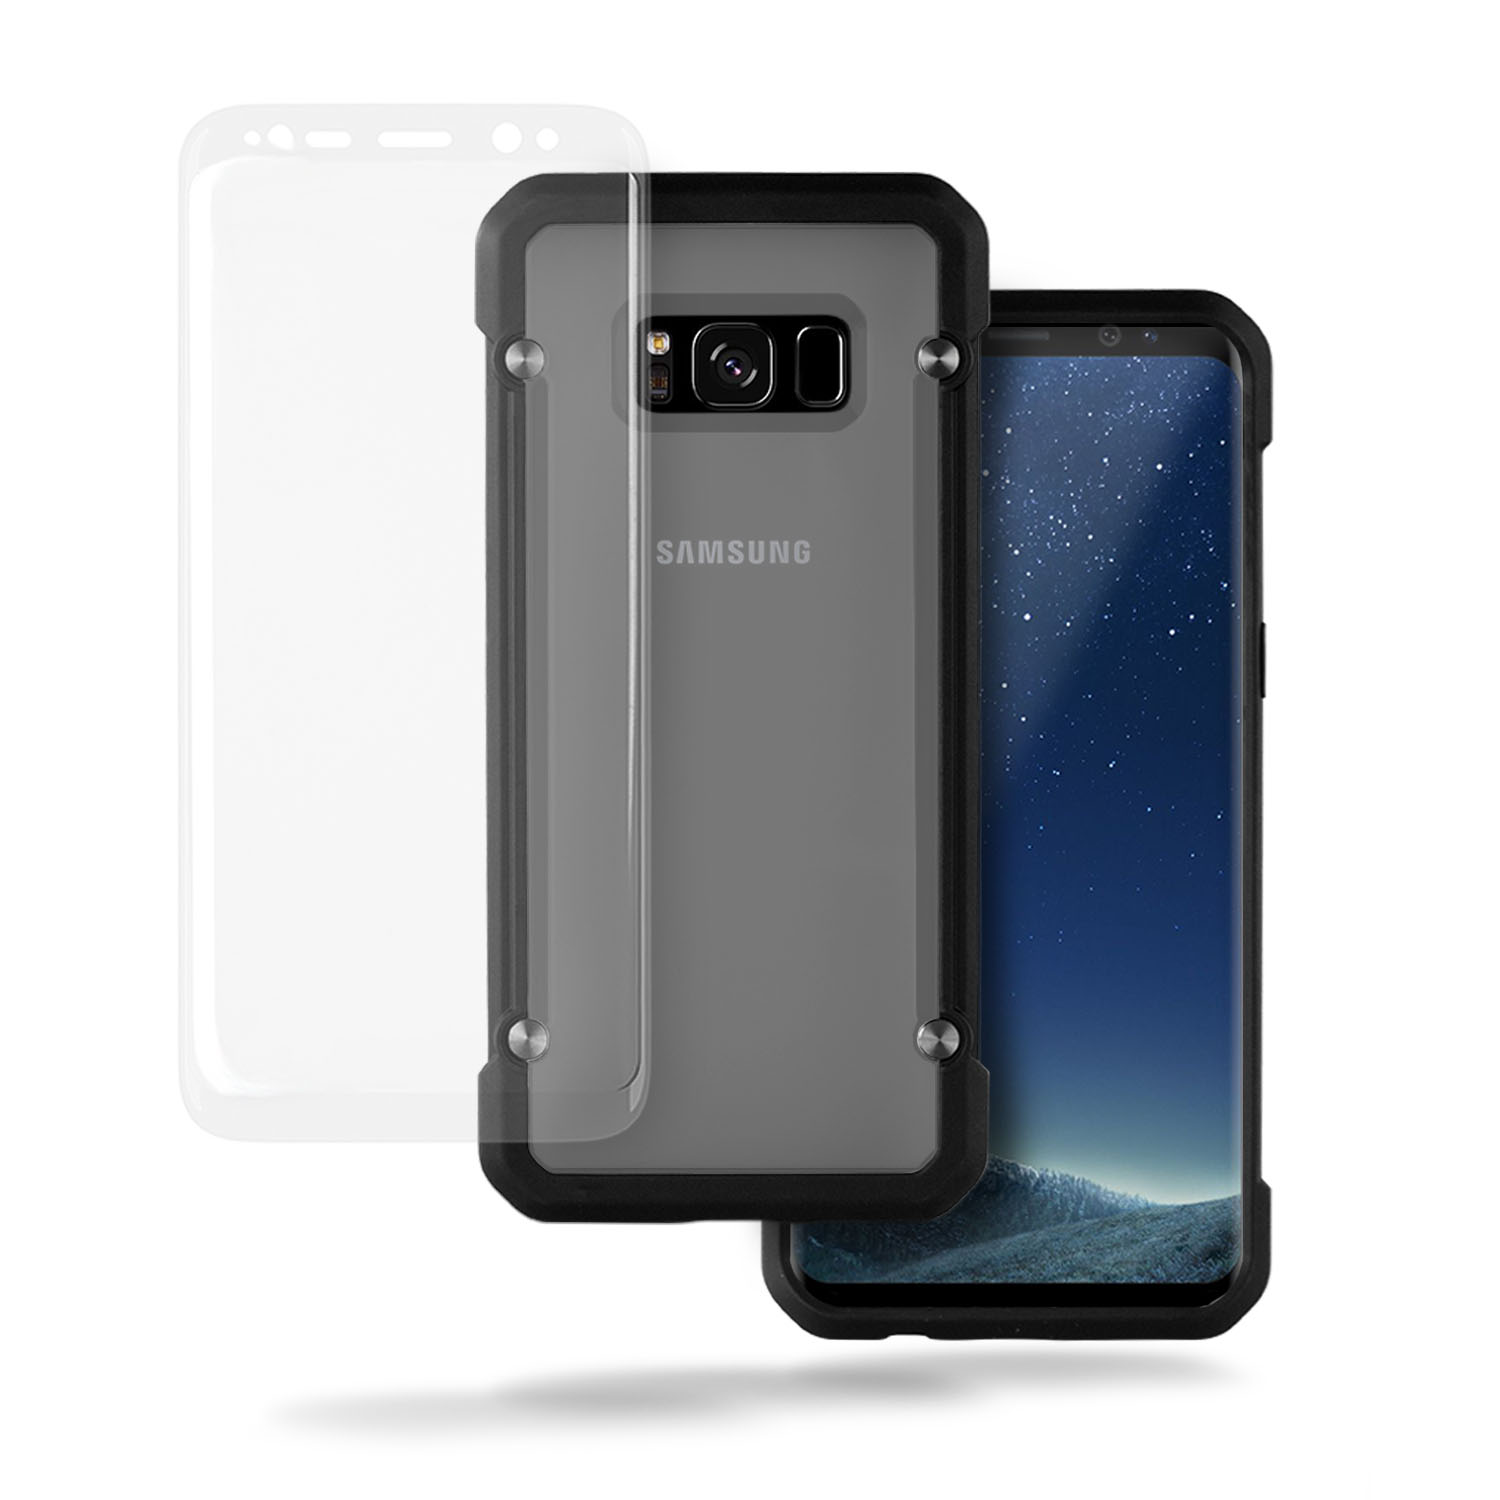 Samsung Galaxy S8 Case, TortugaArmor HEAVY DUTY Protective Case with Reinforced Corner for Samsung S8 - PARENT